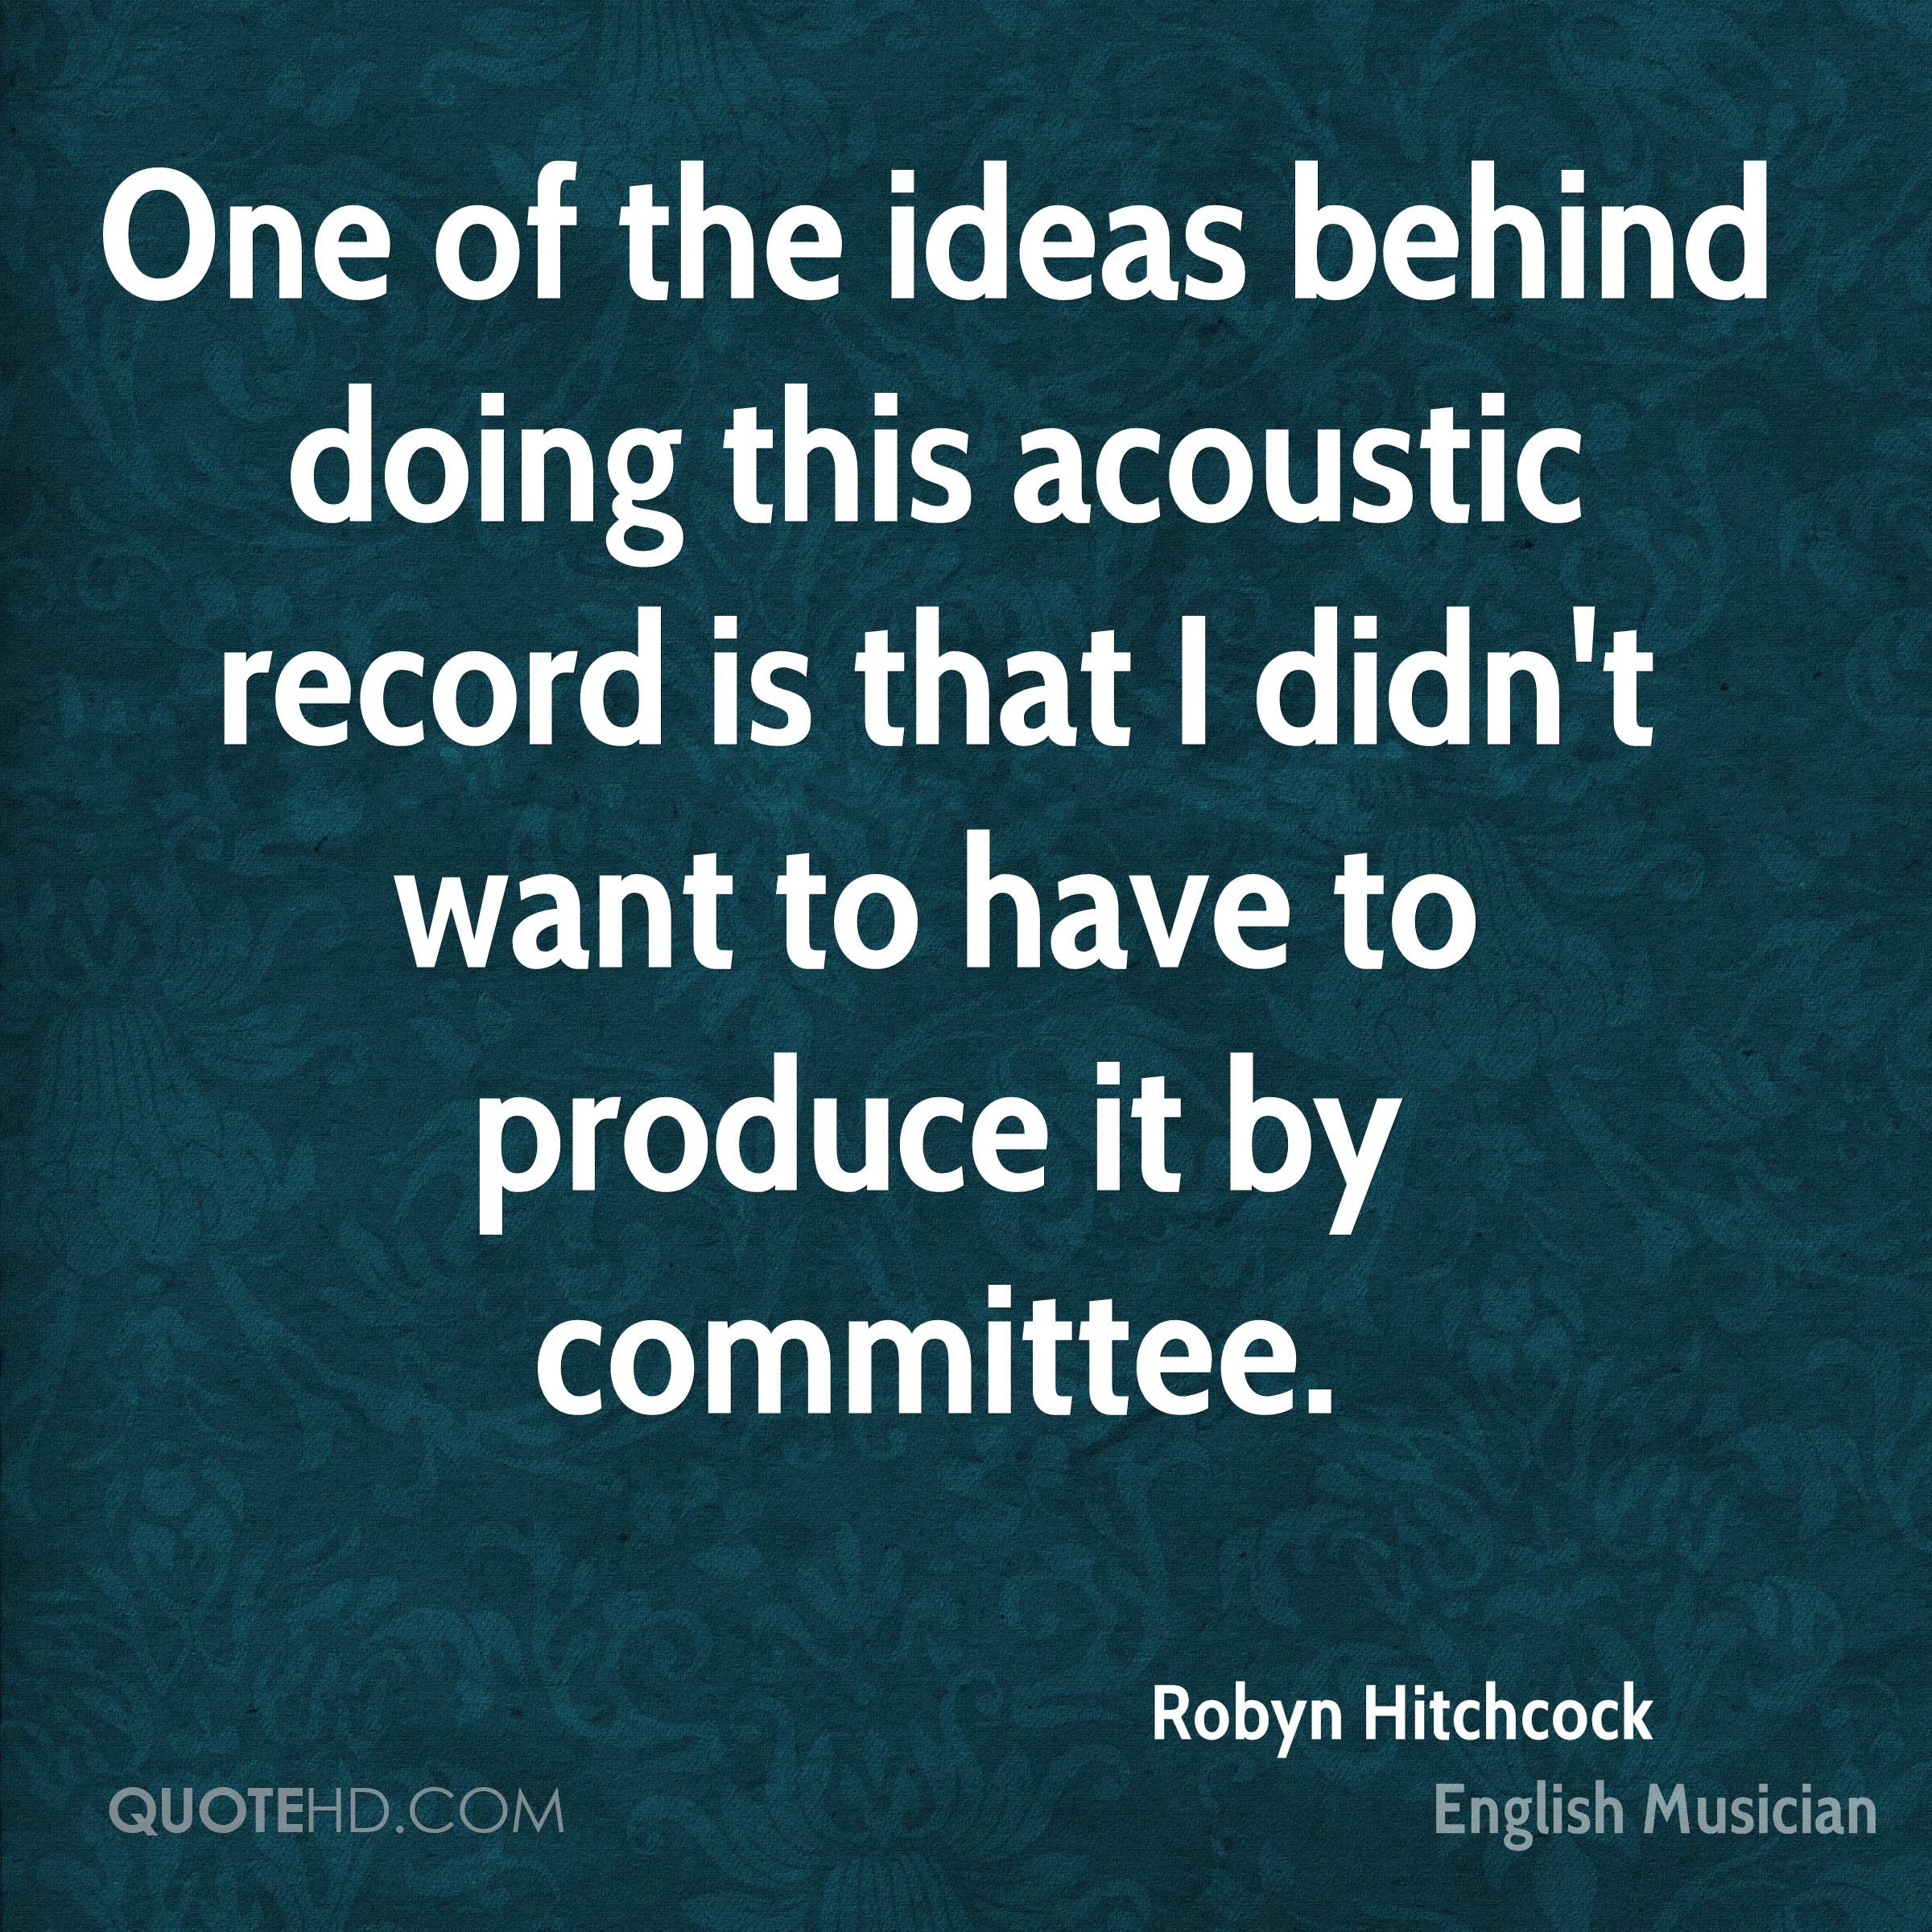 One of the ideas behind doing this acoustic record is that I didn't want to have to produce it by committee.